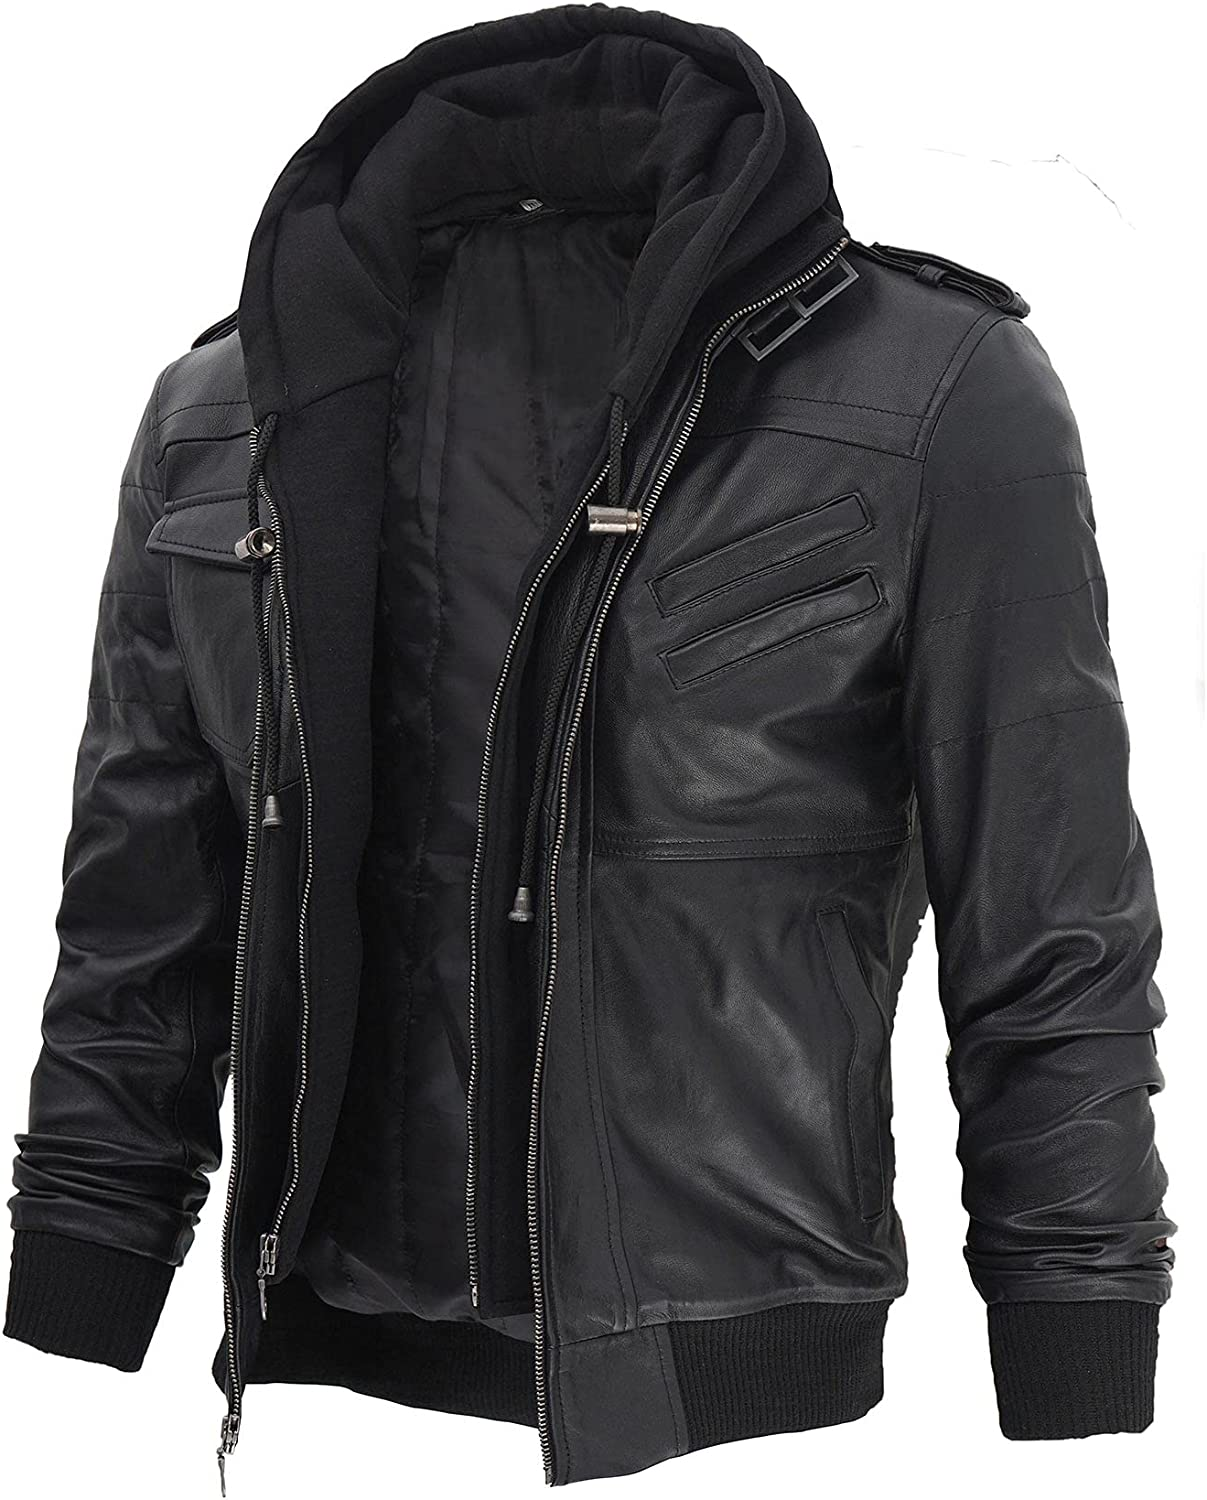 Decrum Leather Jackets for Mens Motorcycle Bomber Style with Removable Hood